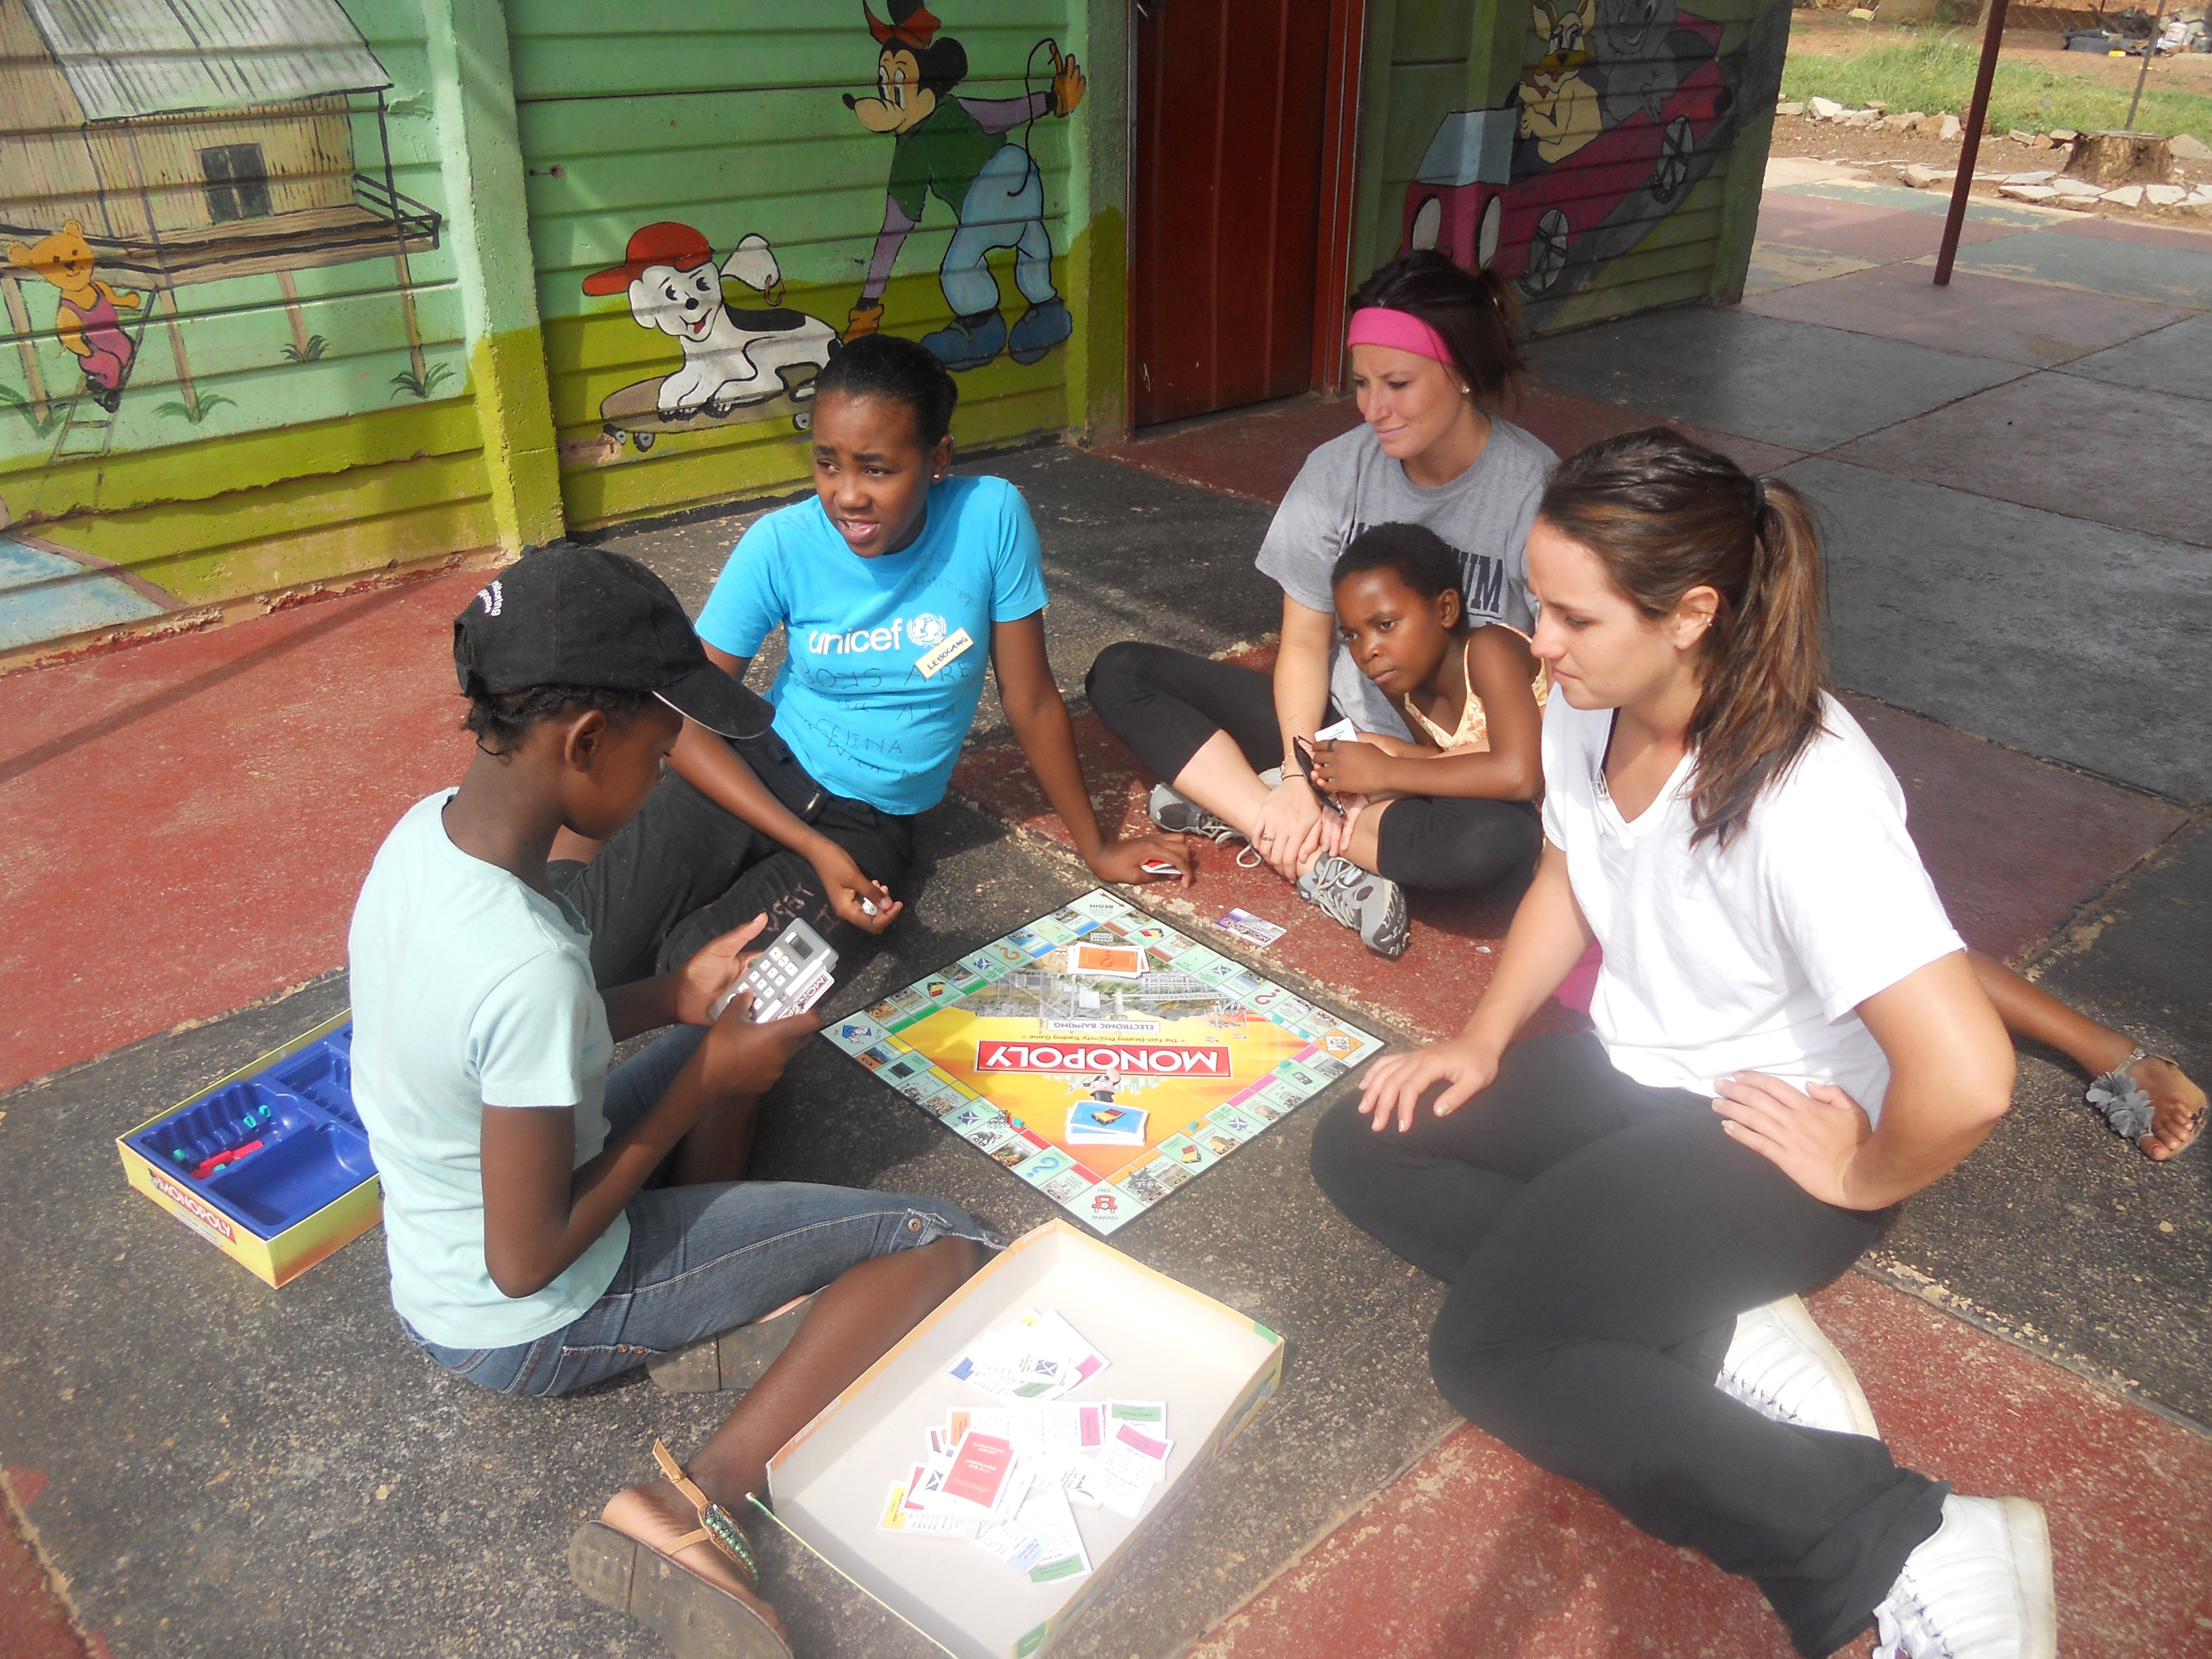 UD student teacher playing Monopoly with children at South African day care